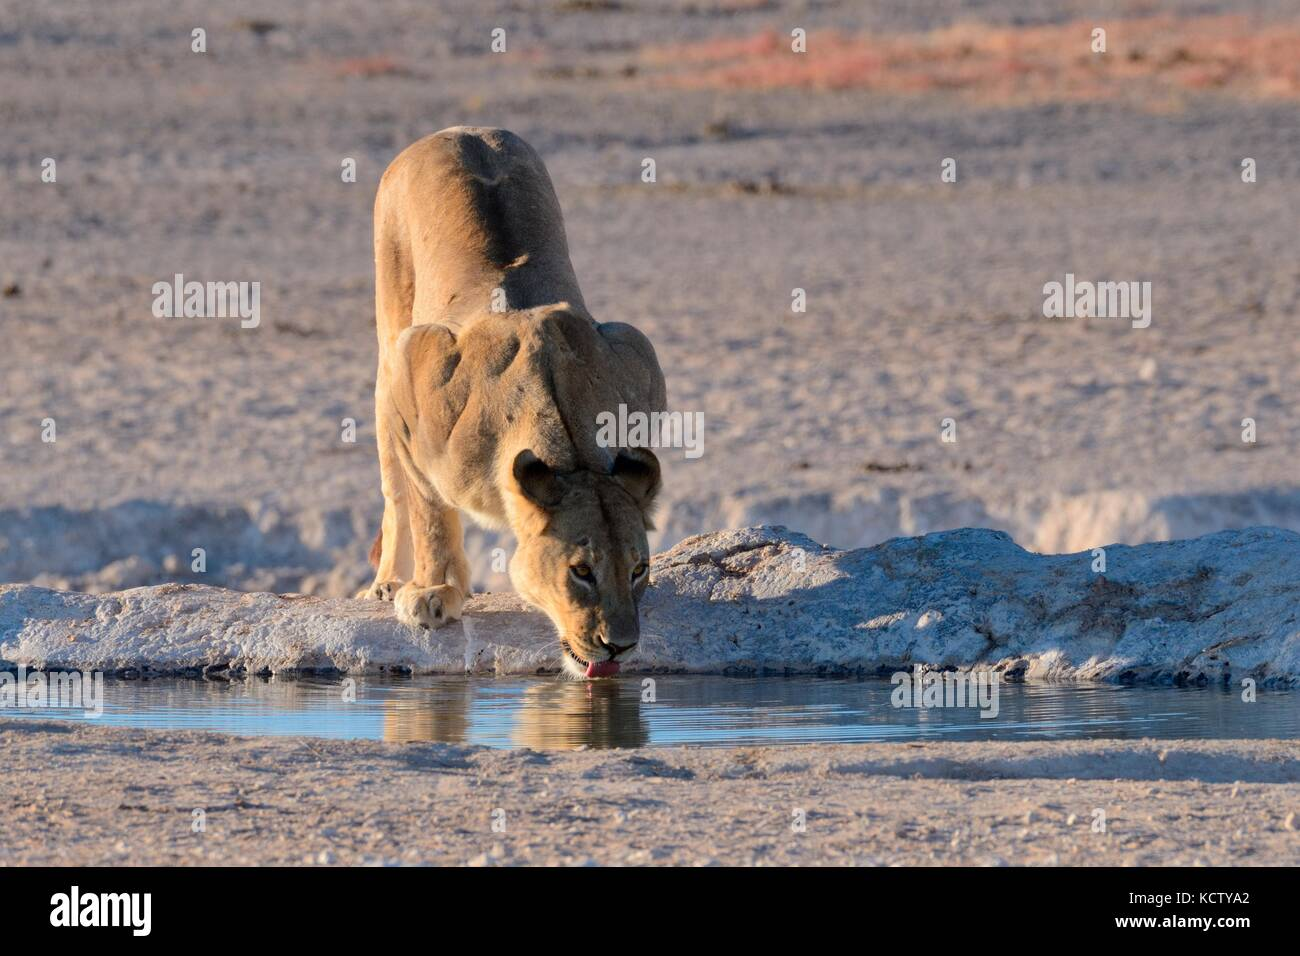 Lioness (Panthera leo) de boire à un point d'eau, lumière du matin, Etosha National Park, Namibie, Photo Stock